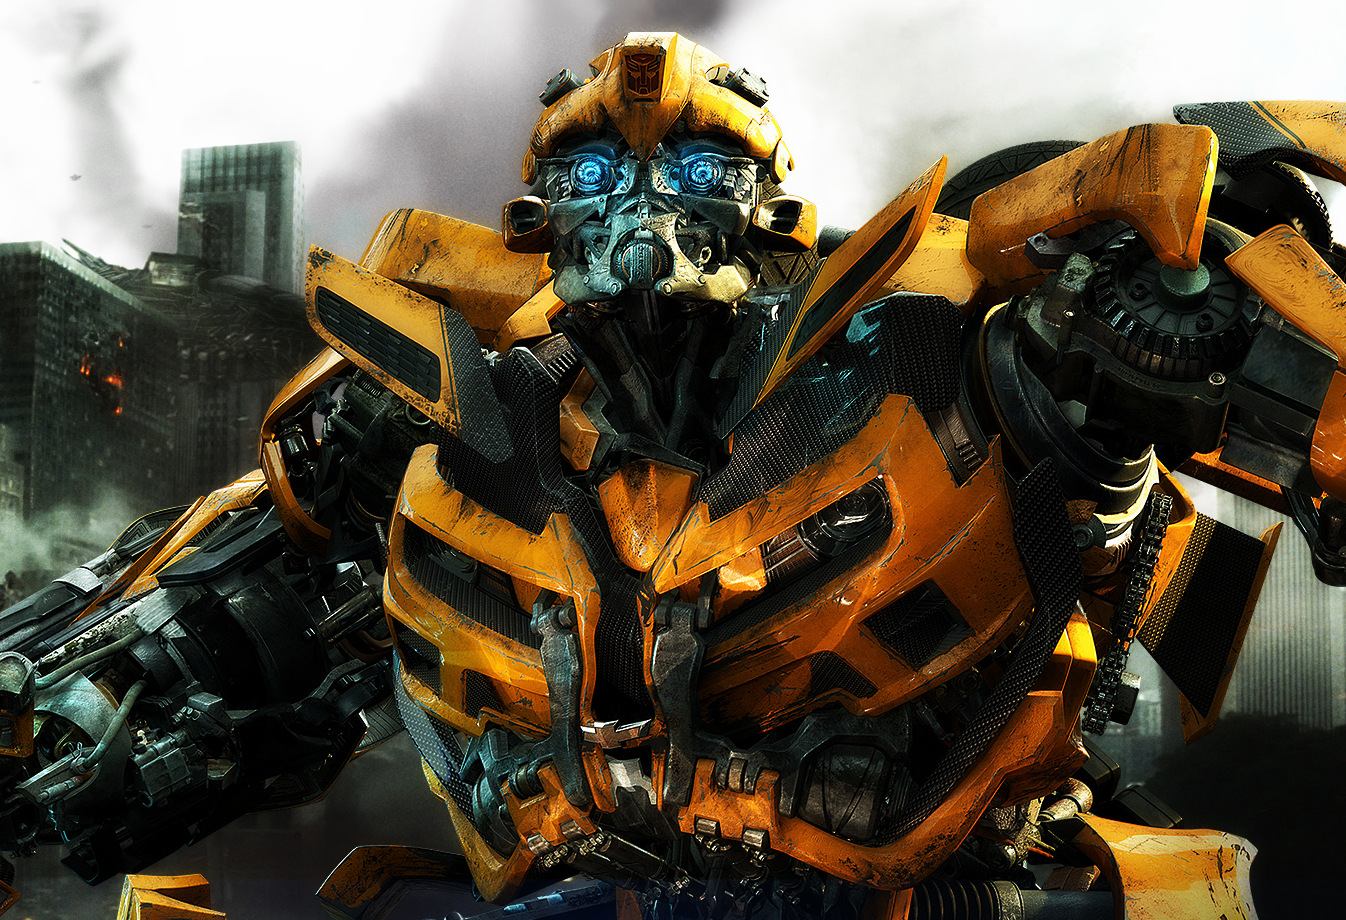 Cute Bumble Bee Wallpaper Michael Bay Attacked On Set In Hong Kong During